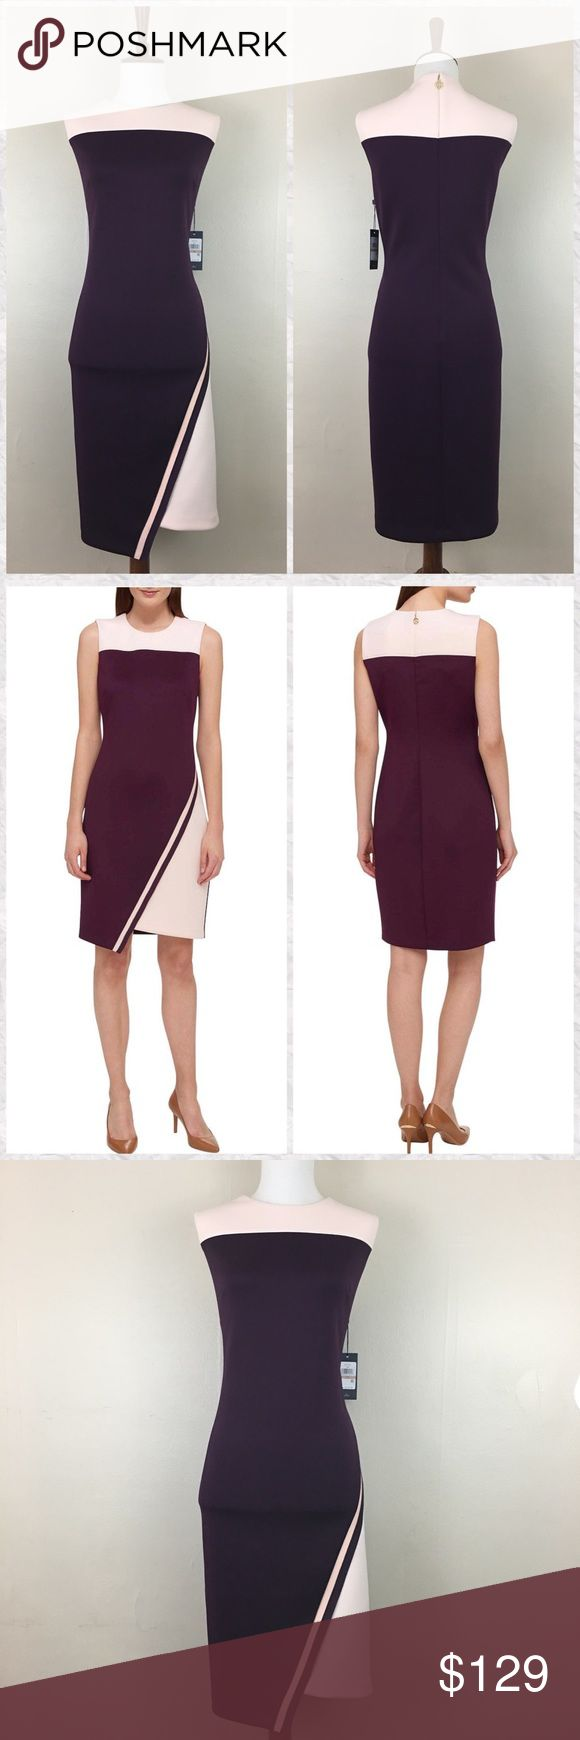 """Tommy Hilfiger Crew Neck Weight Scuba Sheath Dress *Condition: NWT *Neckline: Crew  *Sleeve Style: Sleeveless  *Asymmetrical hem  *Silhouette: Sheath  *Closure: Back zip with Logo pull *Pockets: No  *Shell: 91% Polyester 9% Spandex  *Lining: No *Care: Dry clean *Measurements are approx & taken lying flat *Bust: 38"""" *Waist: 34"""" *Hip: 42"""" *Shoulder to Hem: 39"""" *Stored in non-smoking pet free home Tommy Hilfiger Dresses"""